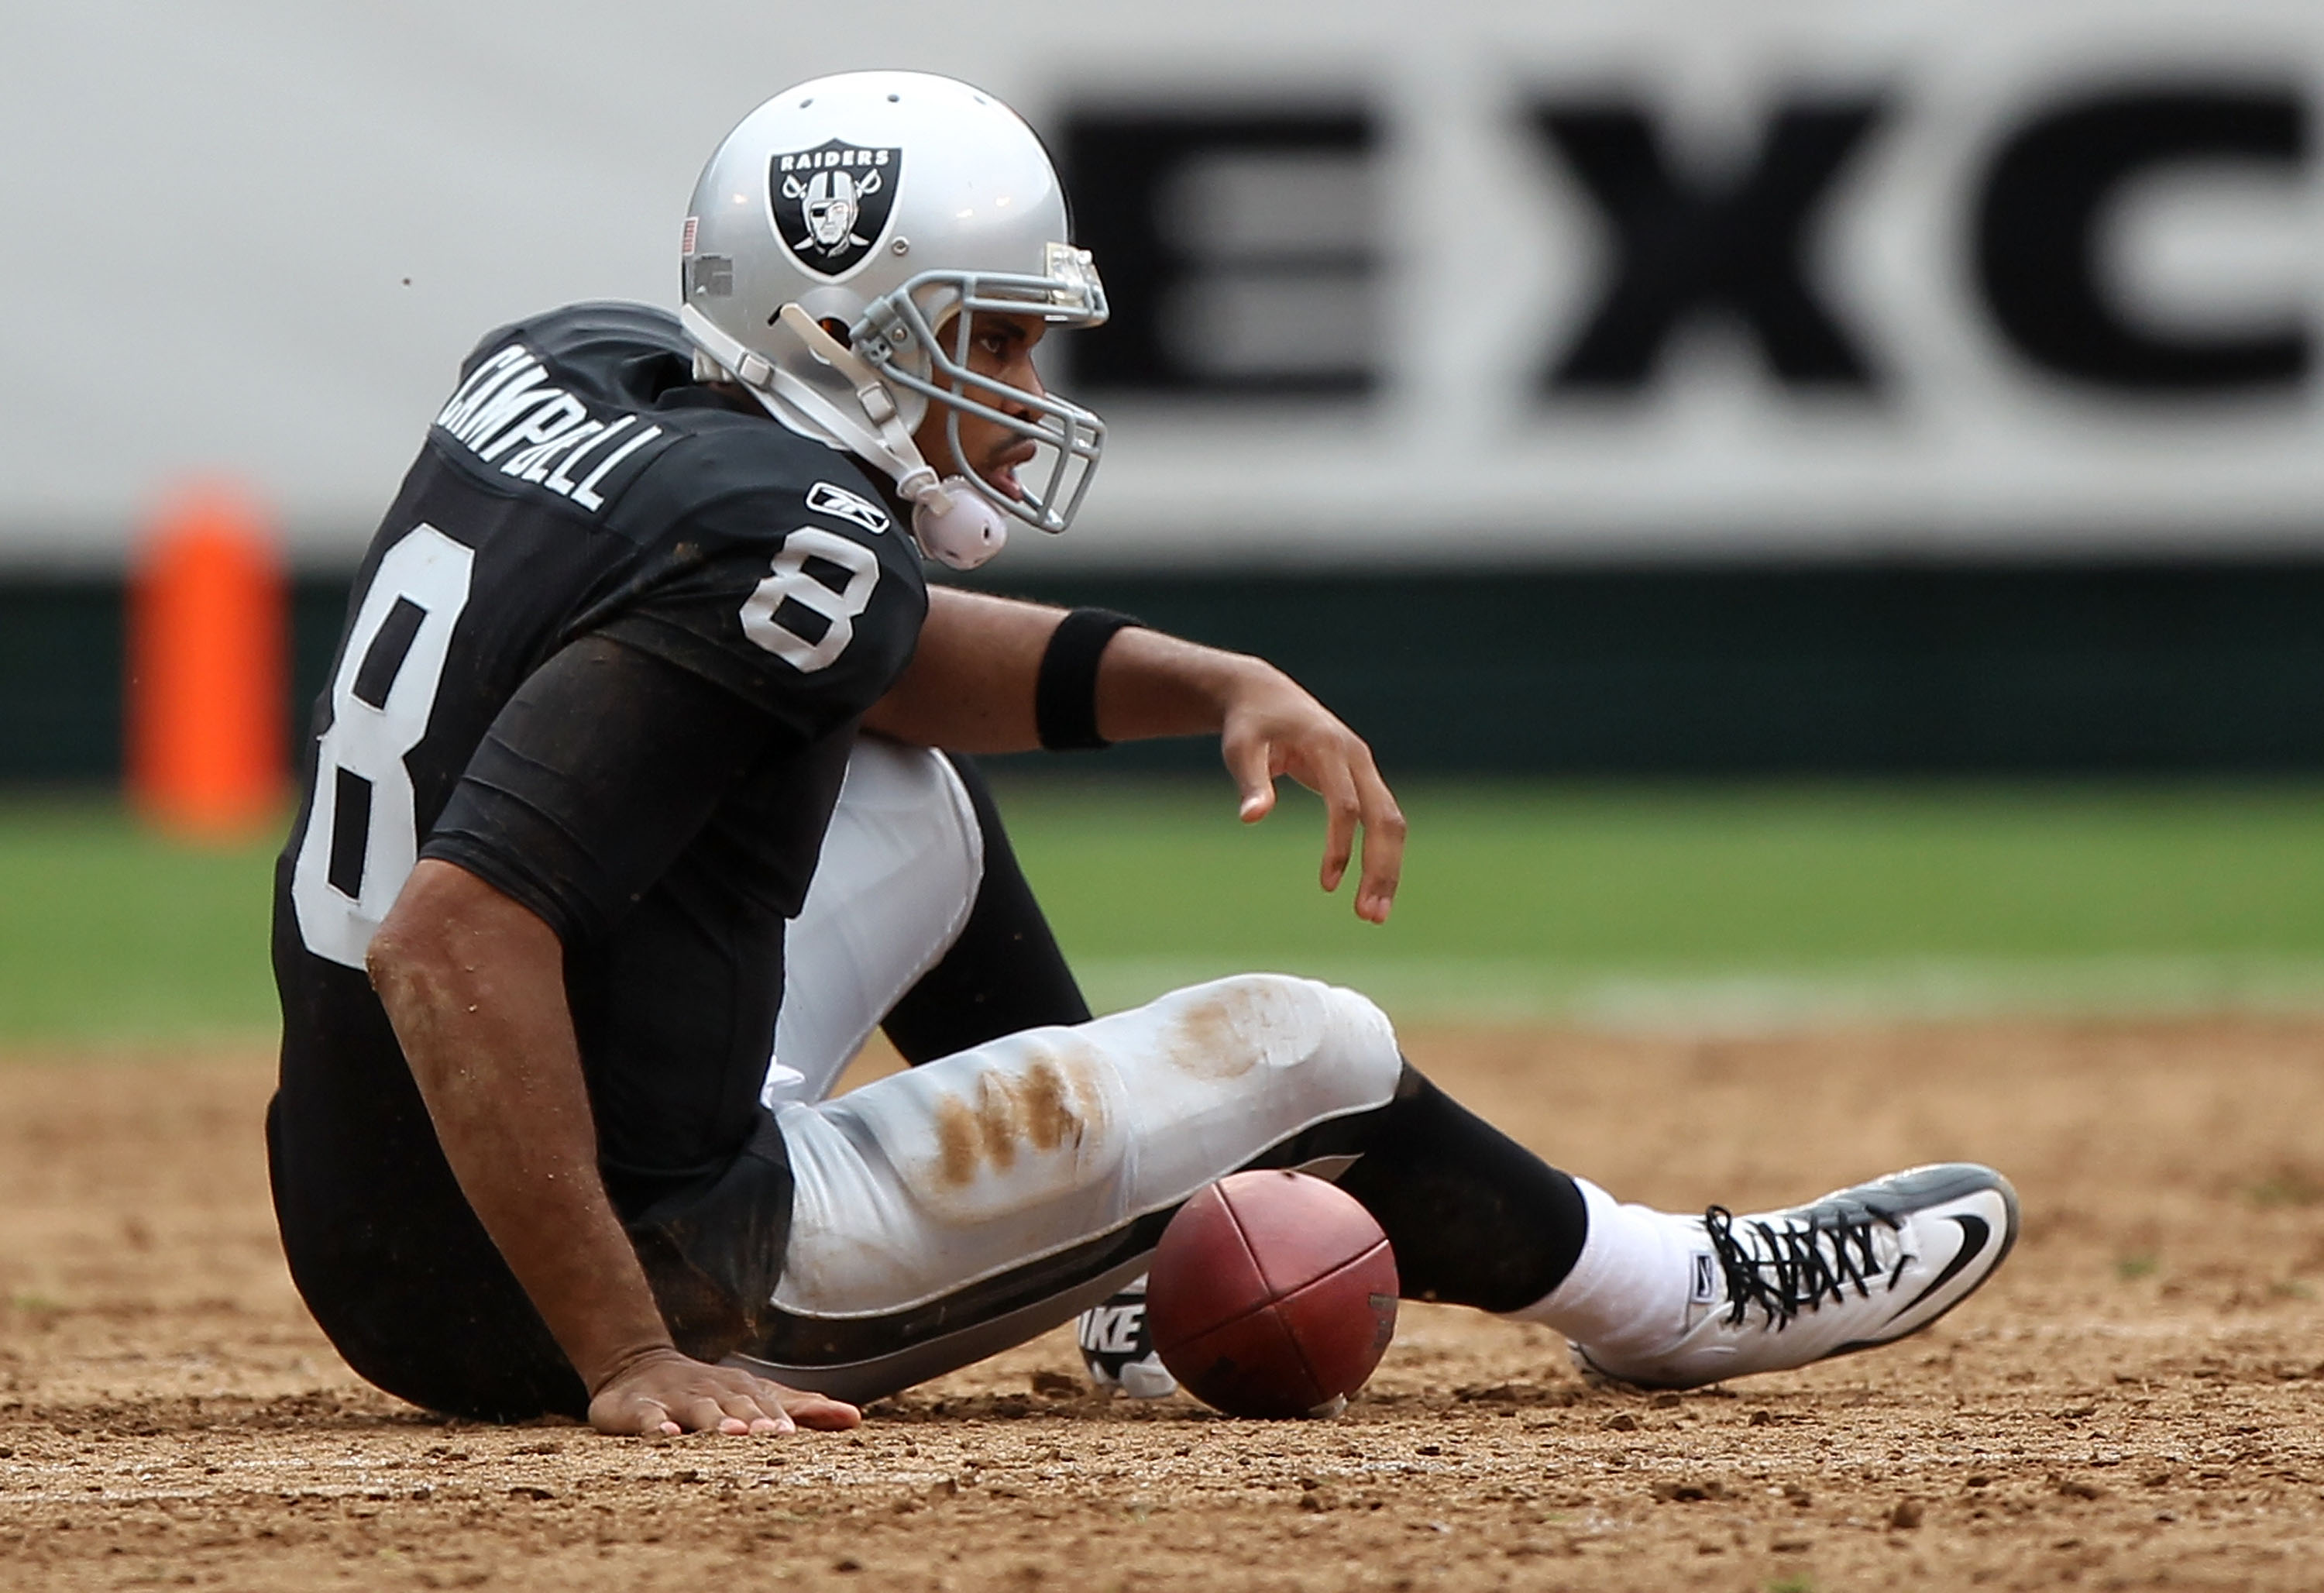 OAKLAND, CA - SEPTEMBER 19:  Jason Campbell #8 of the Oakland Raiders lies on the ground after being sacked against the St. Louis Rams during an NFL game at Oakland-Alameda County Coliseum on September 19, 2010 in Oakland, California.  (Photo by Jed Jacob